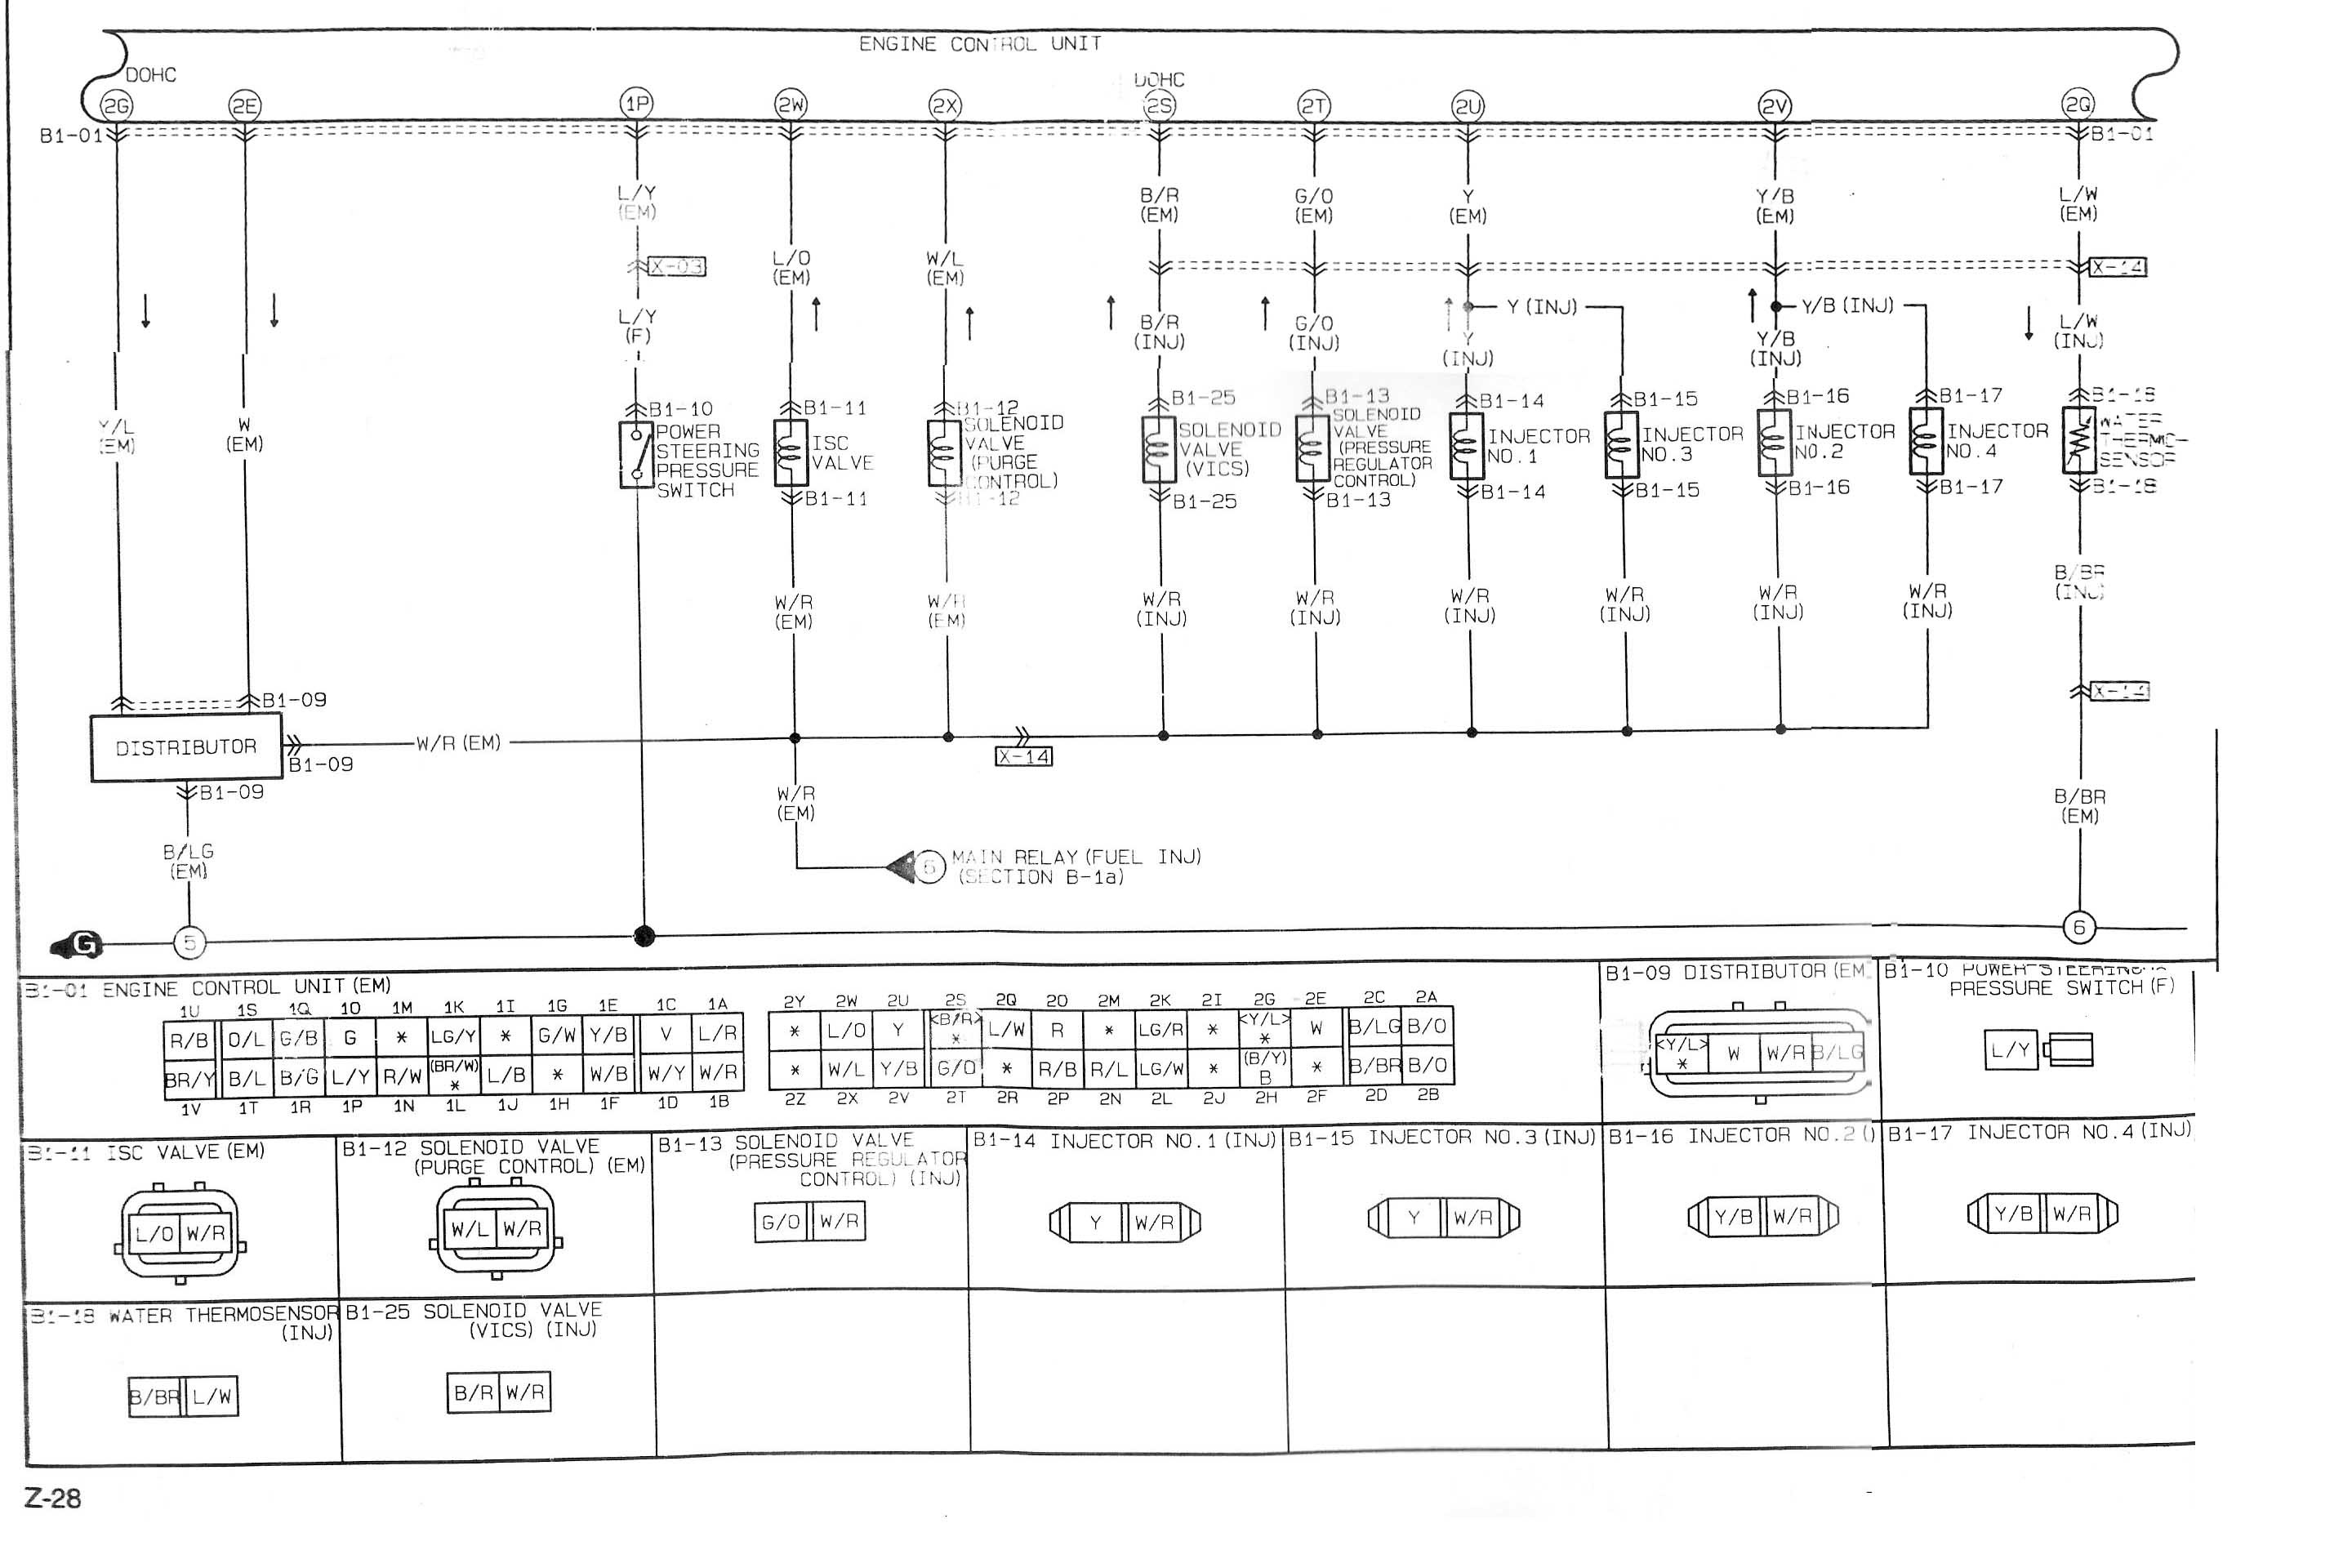 Mazda Protege Engine Diagram Mazda 323 1993 Wiring Diagram Wiring Diagrams Of Mazda Protege Engine Diagram 1989 Mazda 323 Wiring Diagram Wiring Diagrams